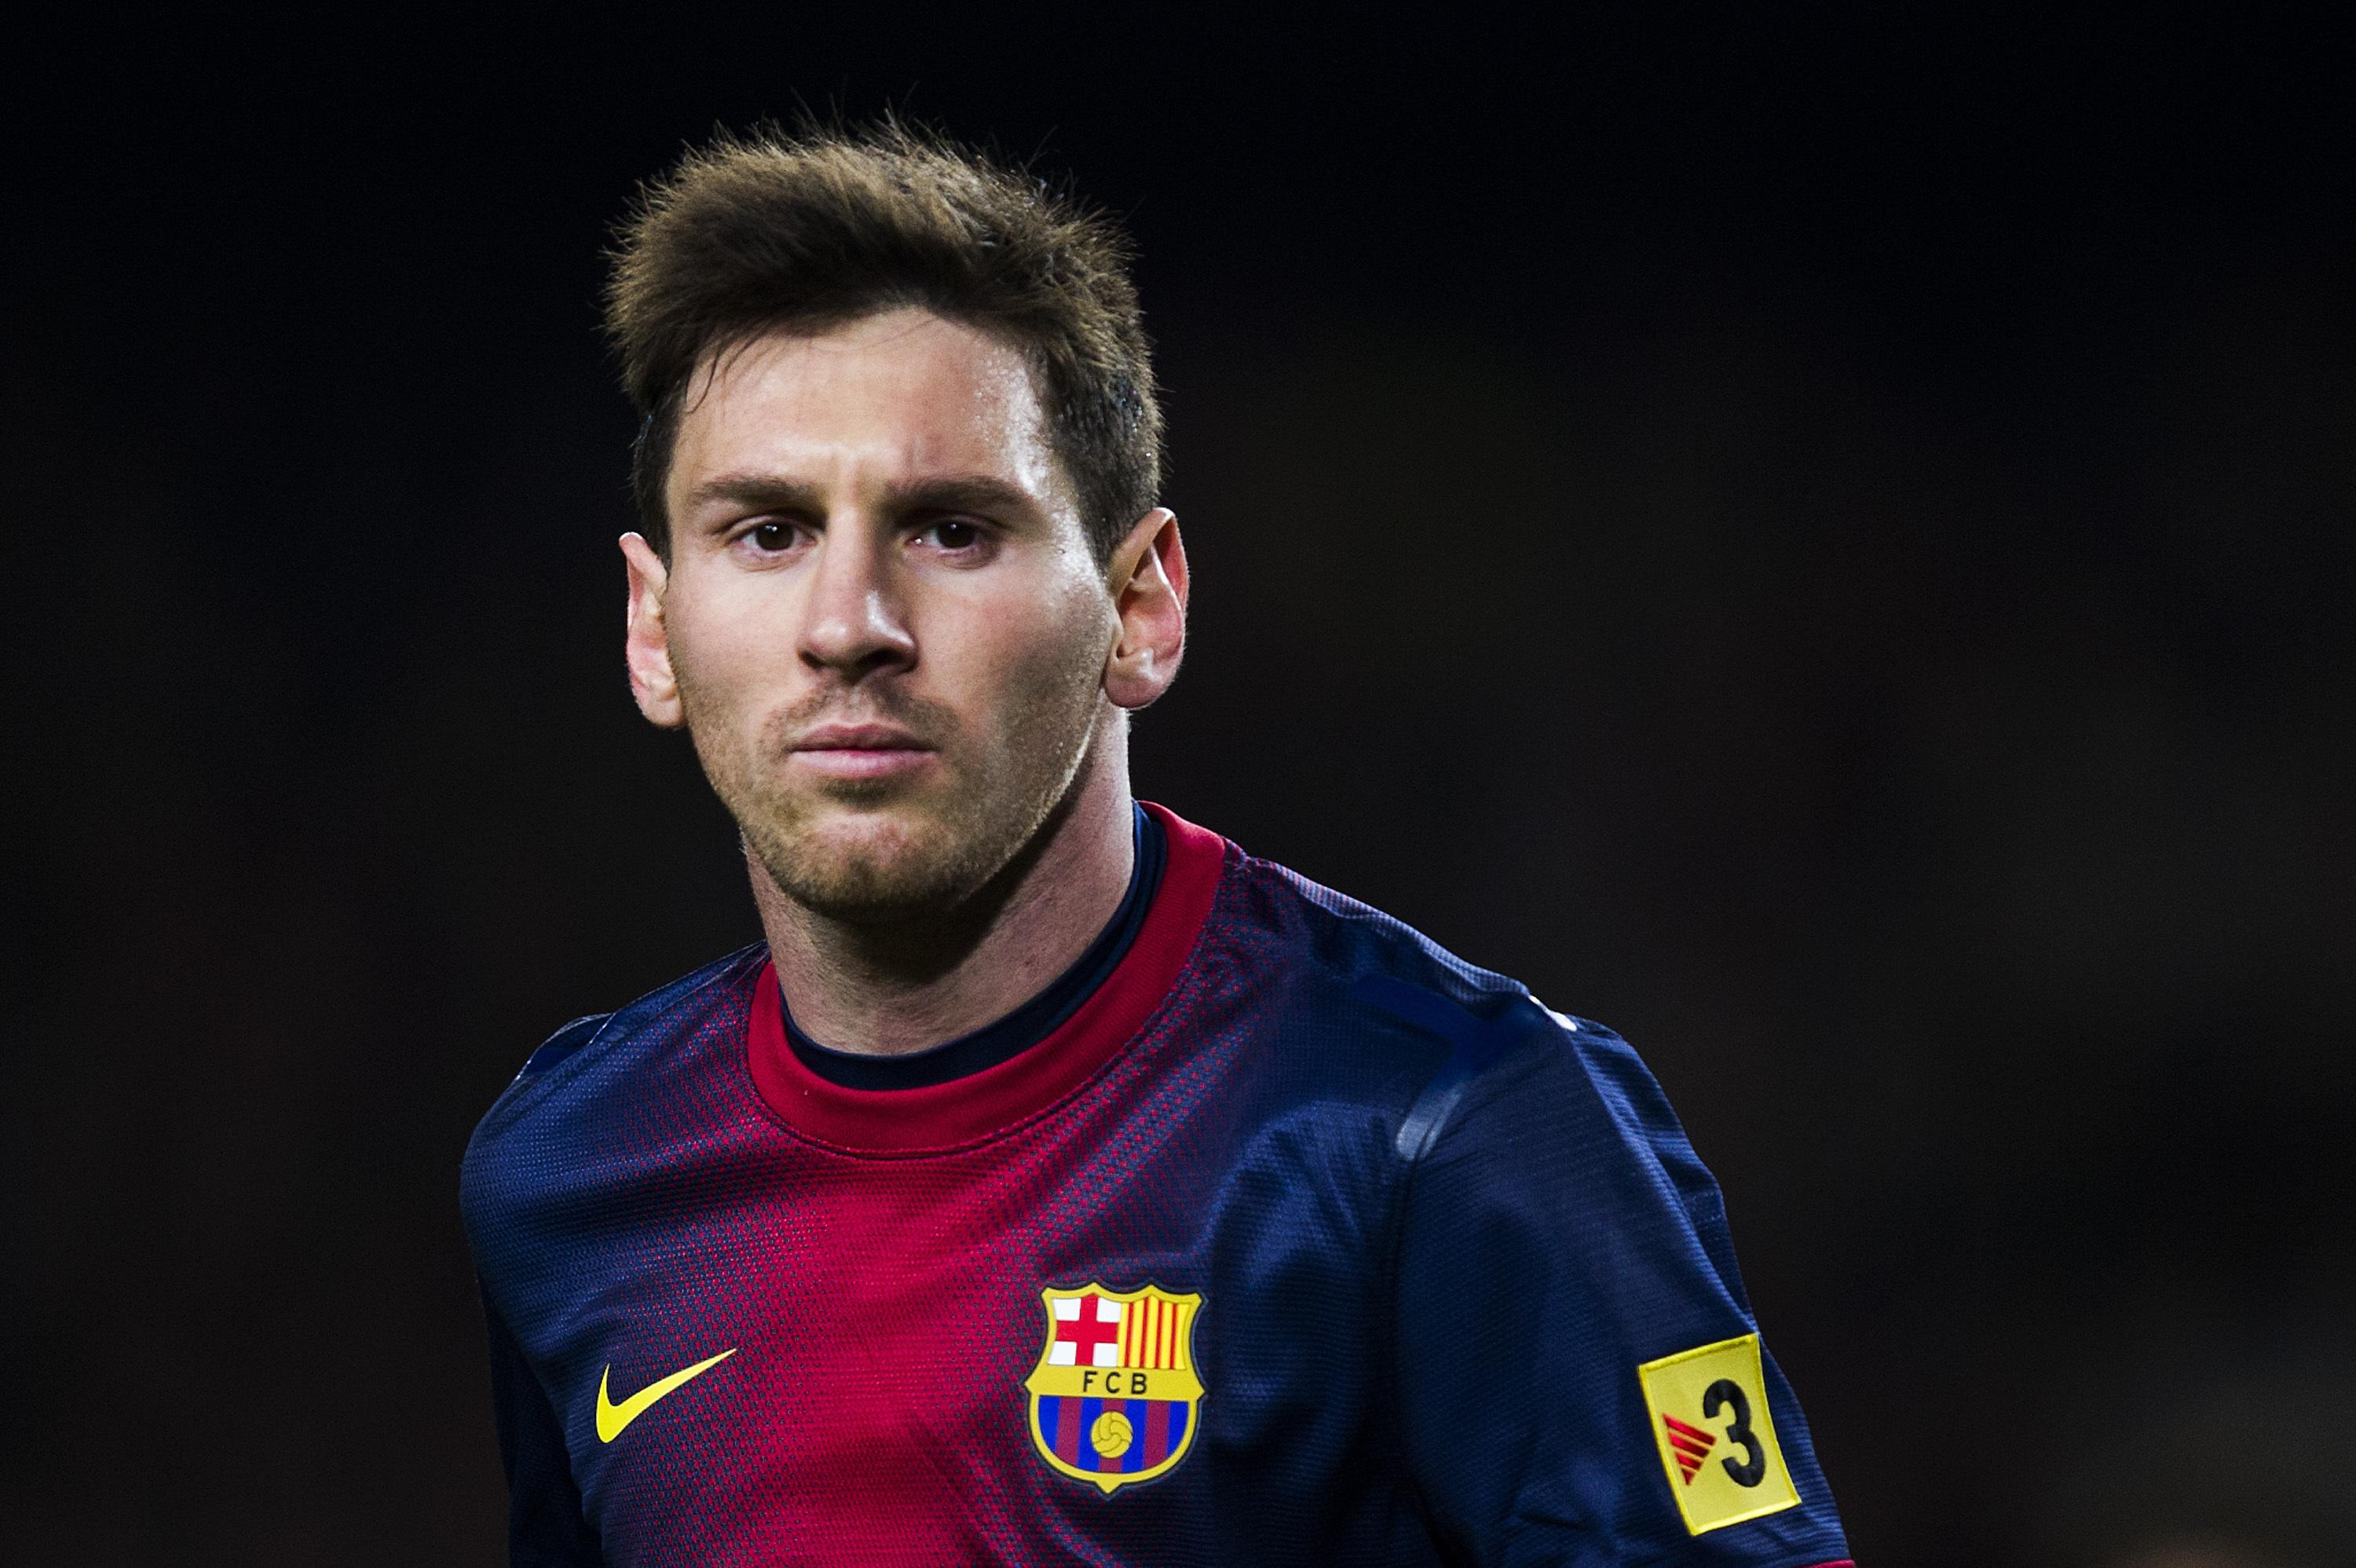 Lionel messi hd wallpapers free download lionel messi pictures voltagebd Choice Image